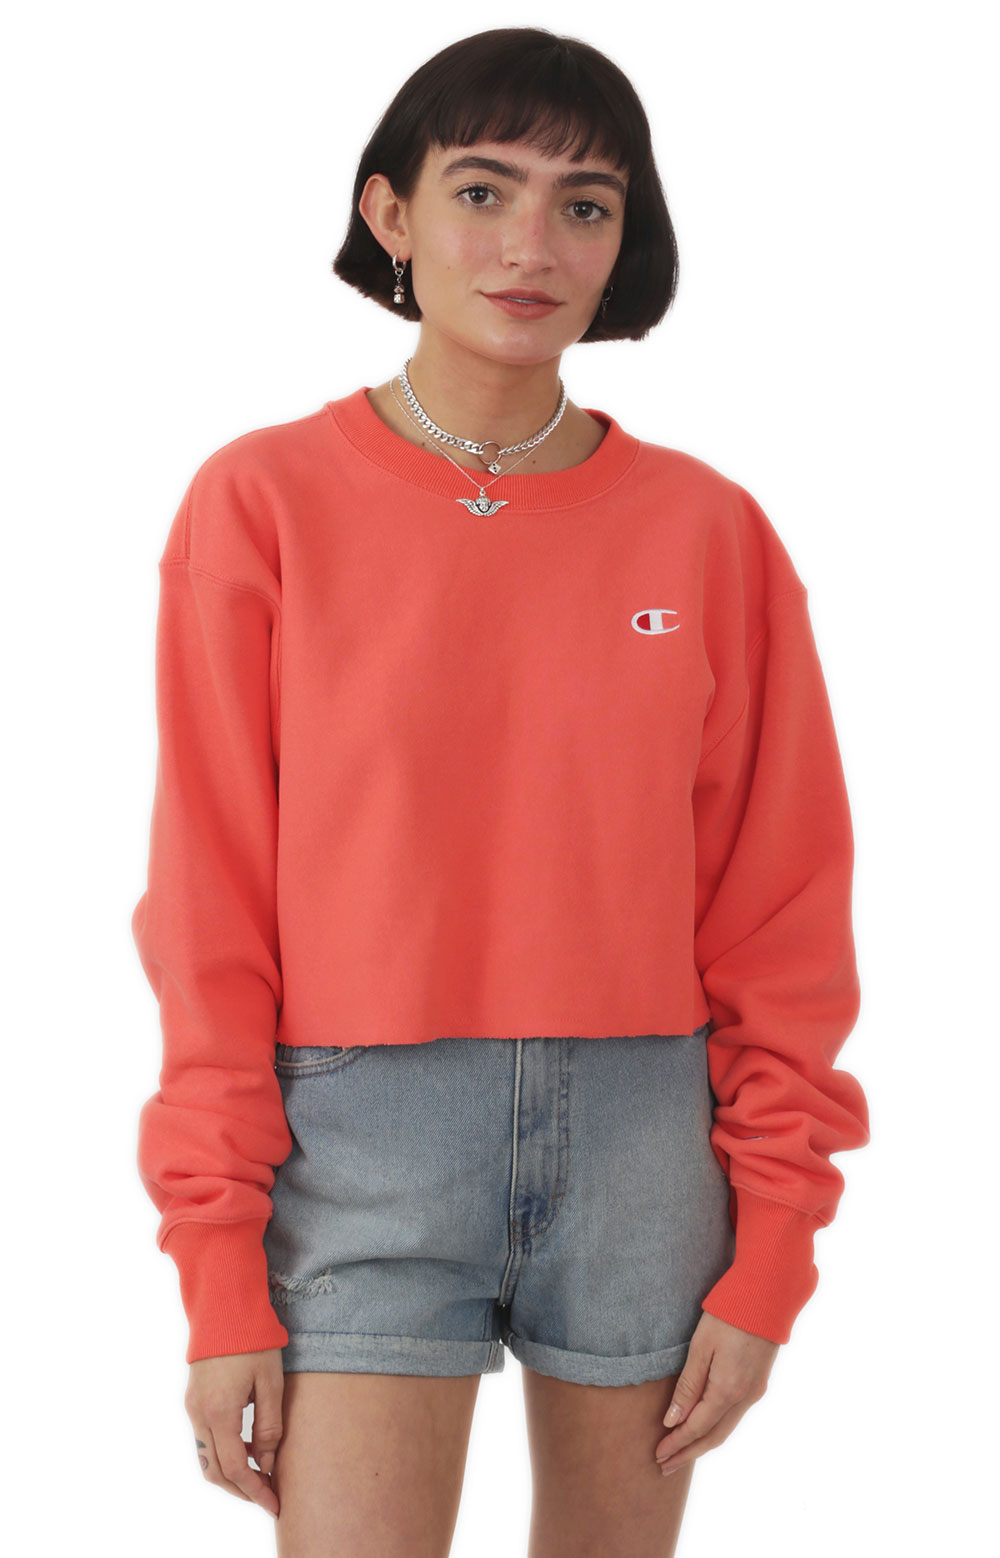 Reverse Weave Cropped Cut Off Crewneck - Groovy Papaya 1